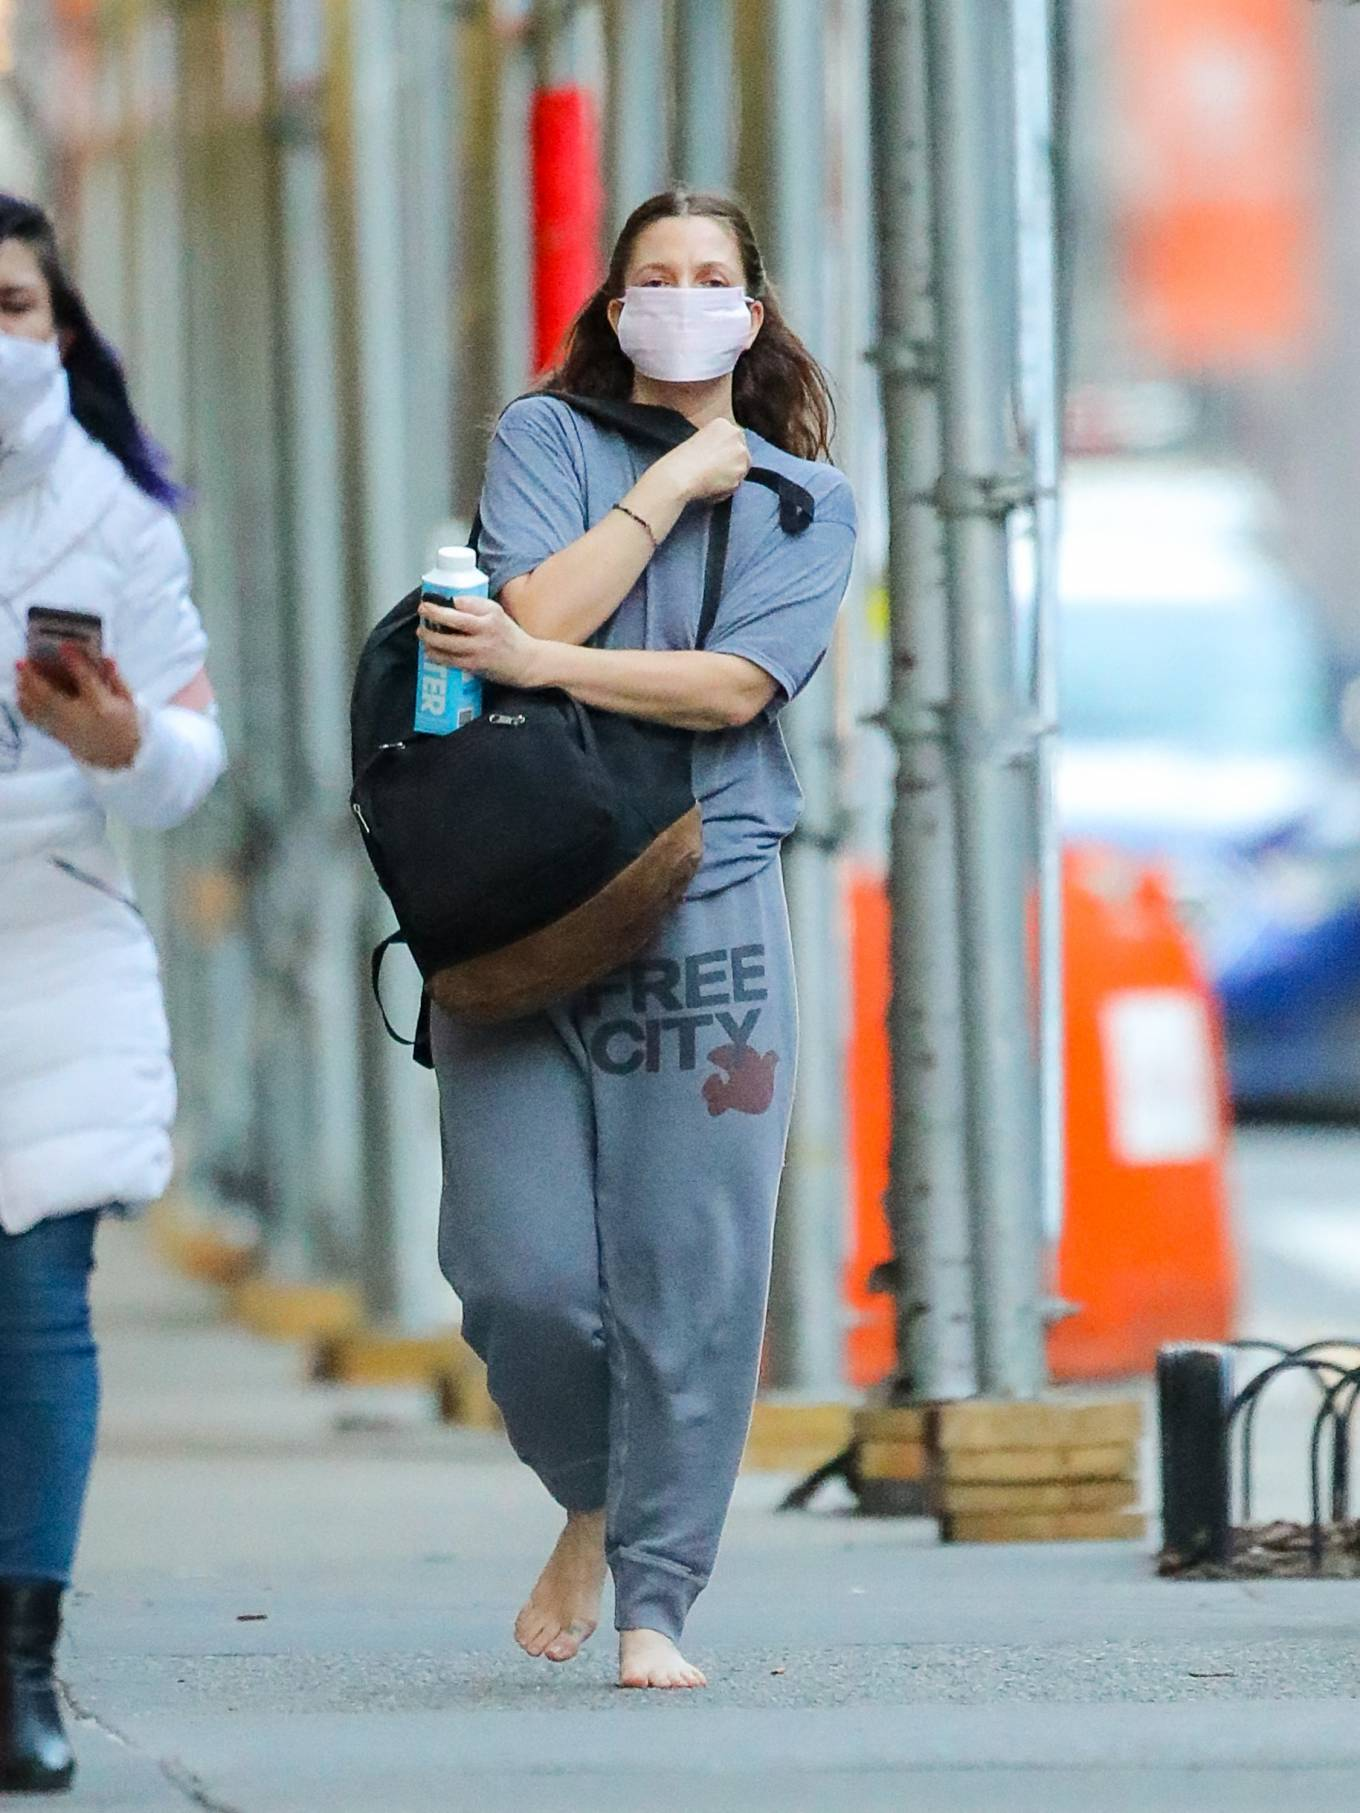 Drew Barrymore 2021 : Drew Barrymore – Goes barefoot while out and about in New York-02